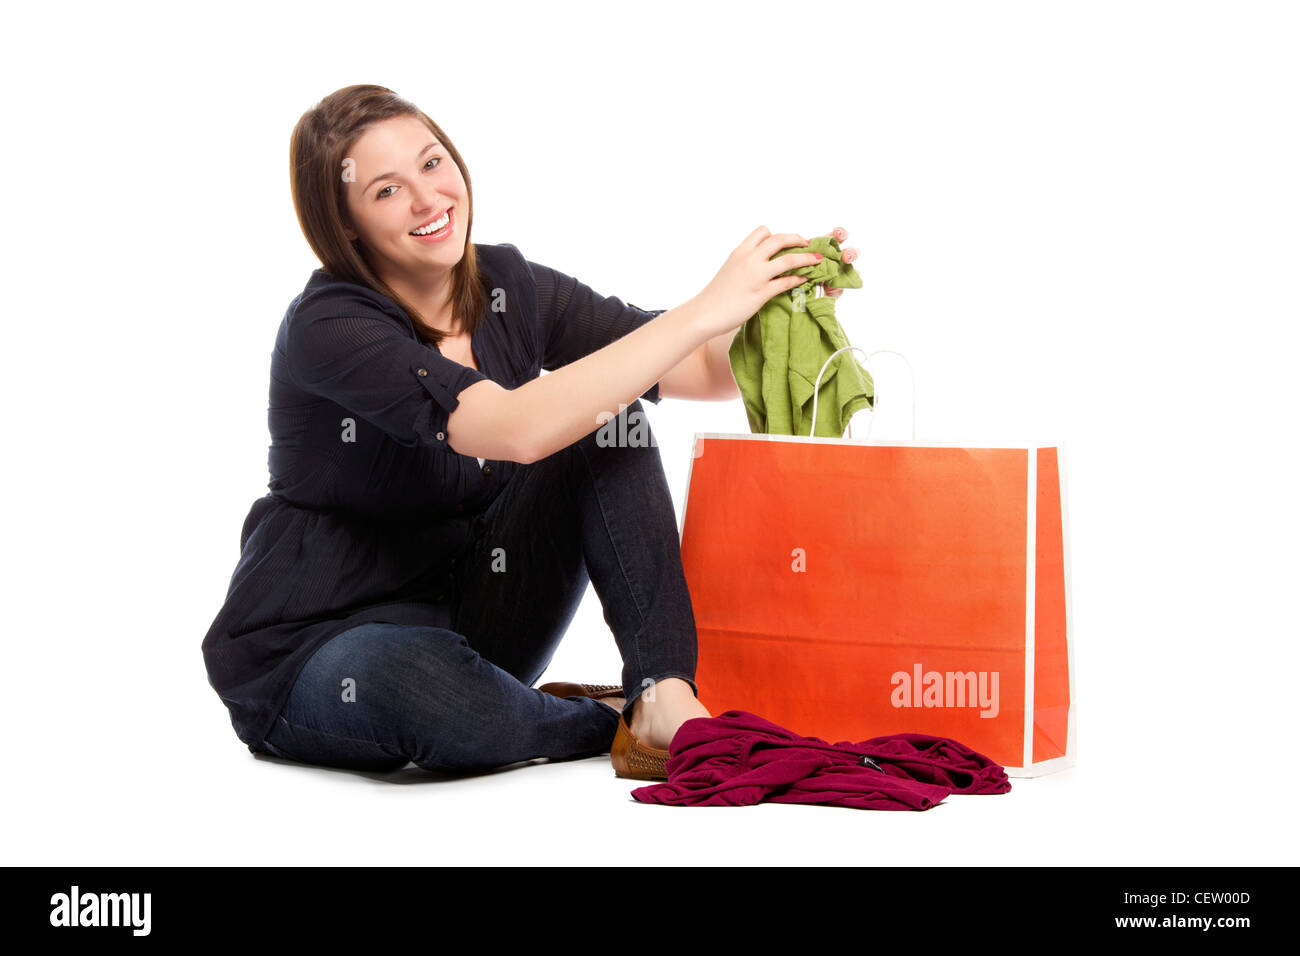 Young woman displaying her new green top bought during sale - White background  - Stock Image